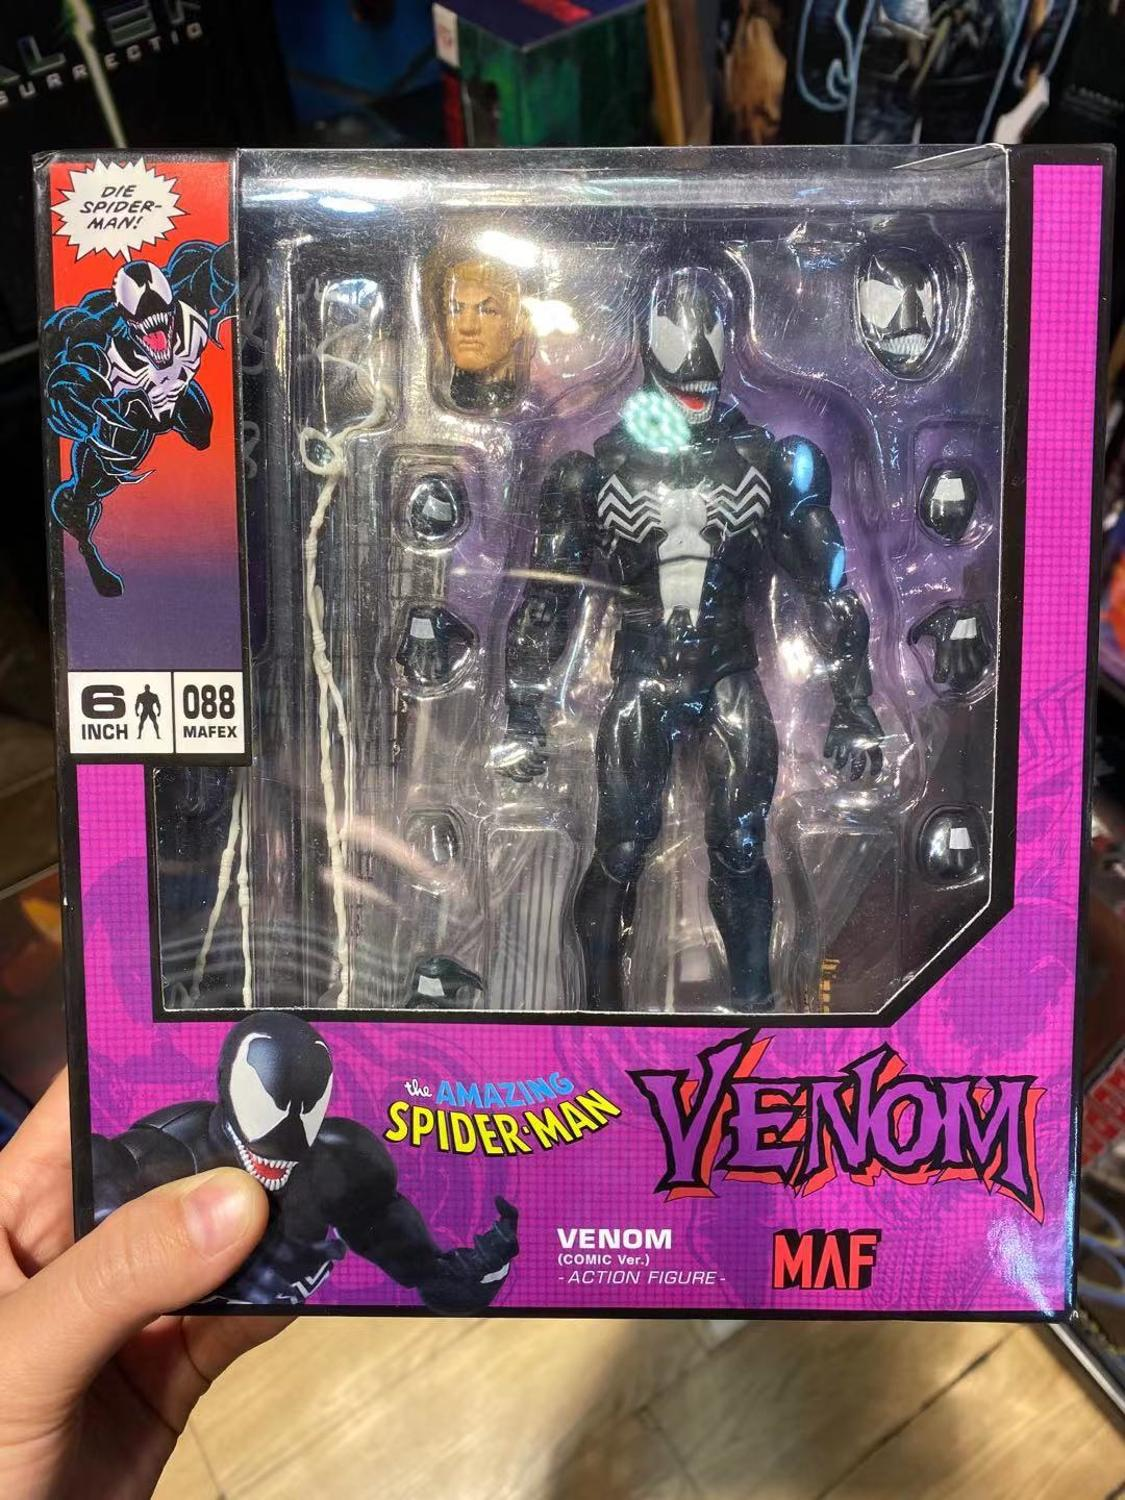 maf088-font-b-marvel-b-font-character-venom-in-the-amazing-spiderman-figure-model-toys-with-box